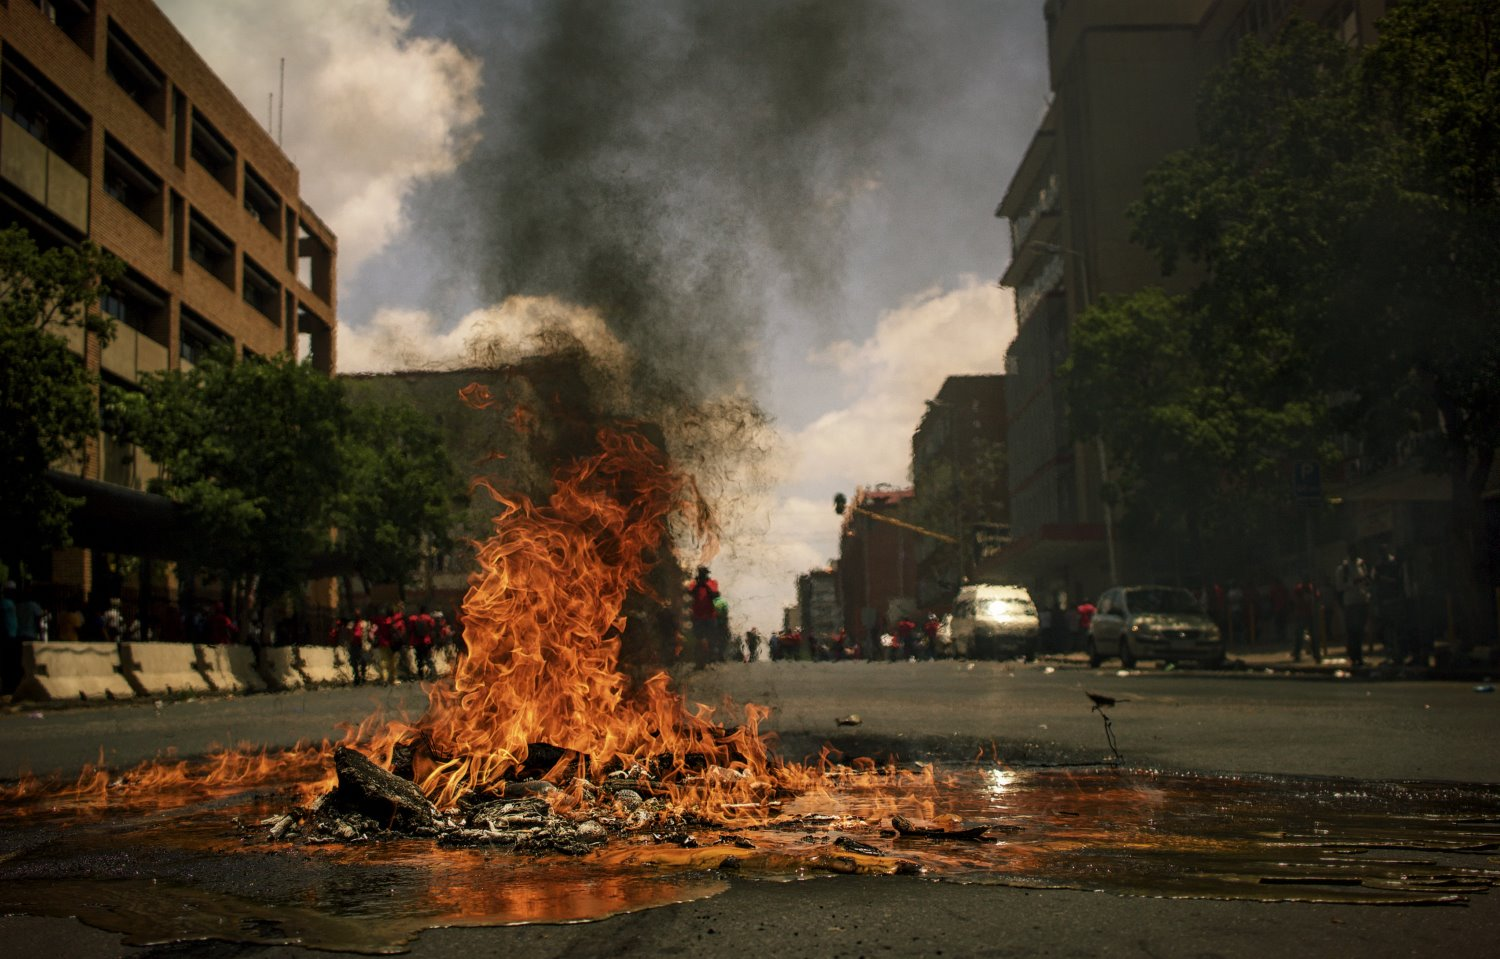 fire in the street photo essay